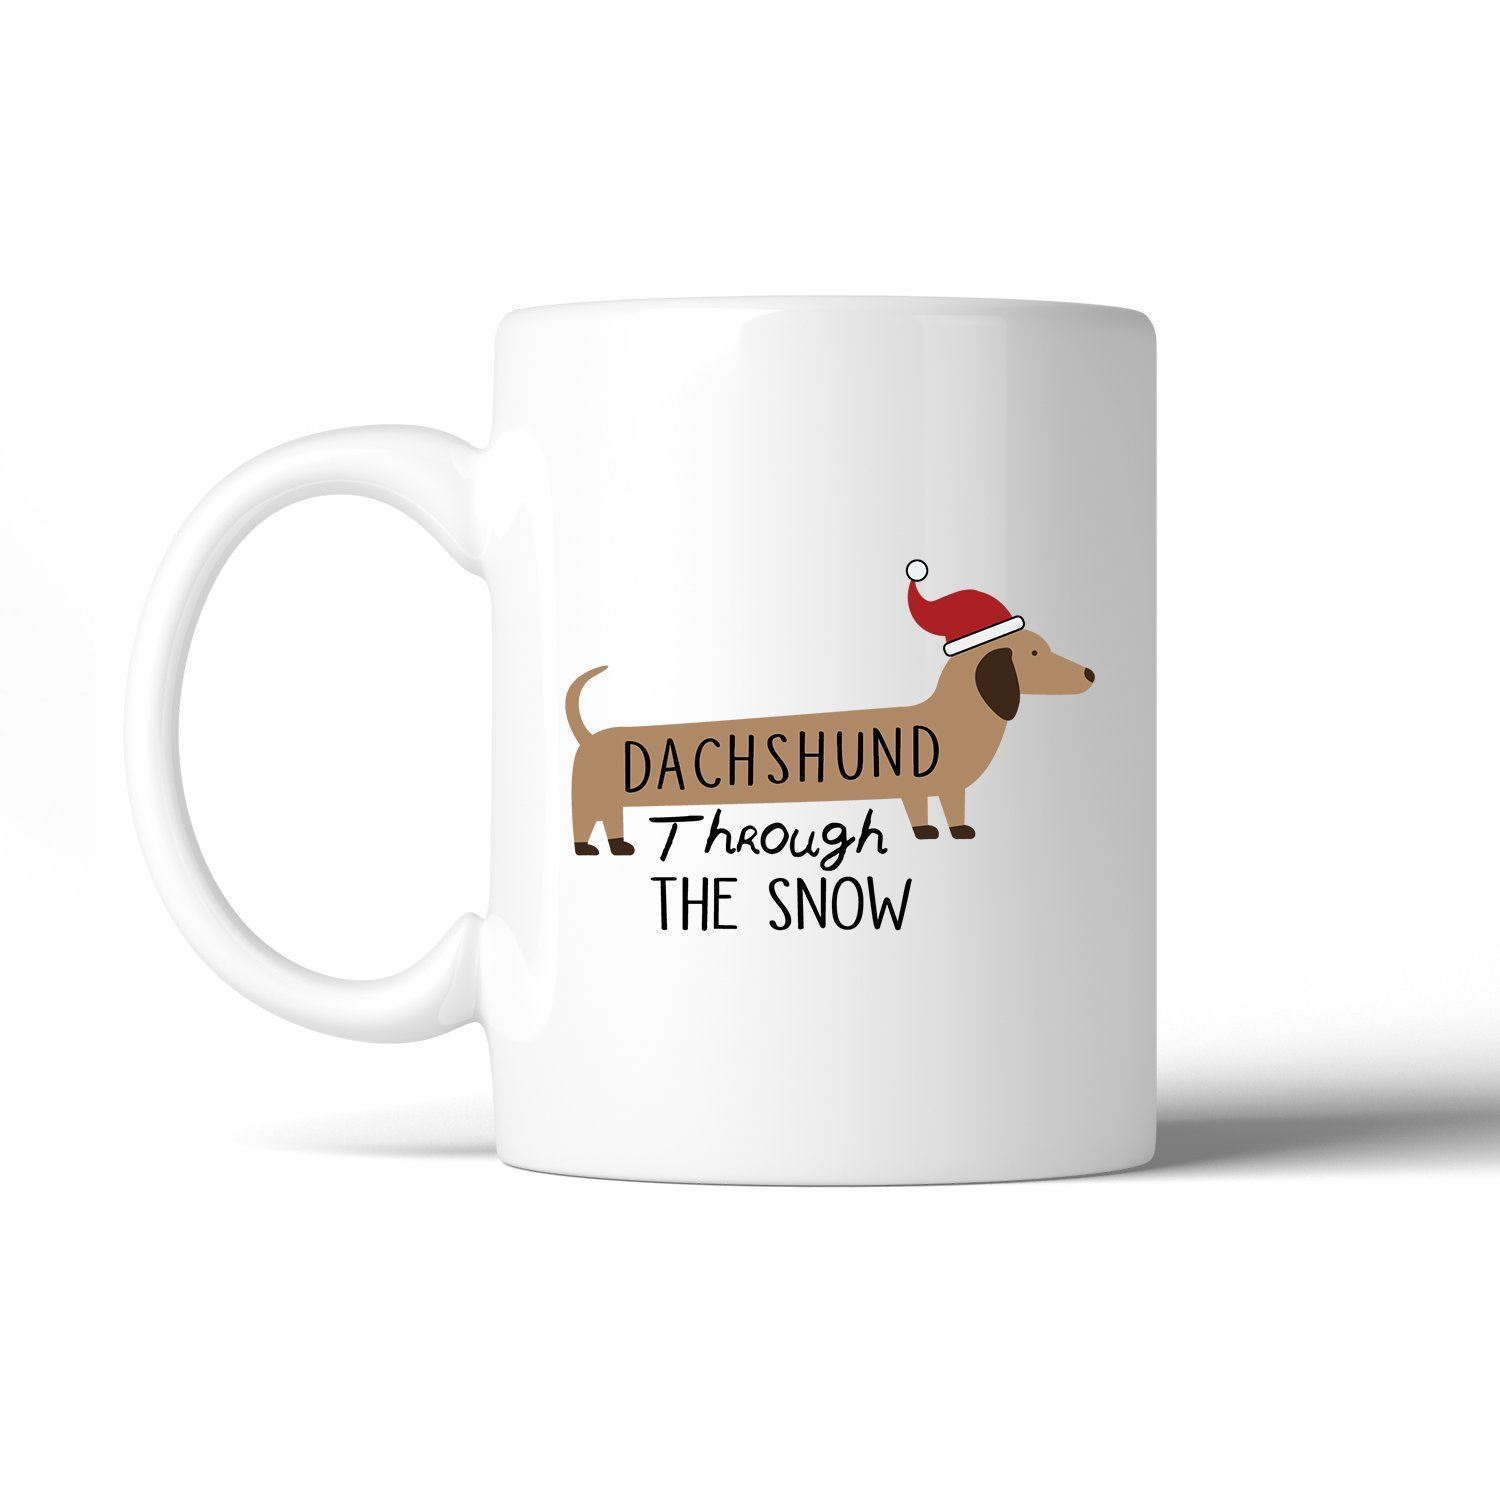 Dachshund Through The Snow White Mug